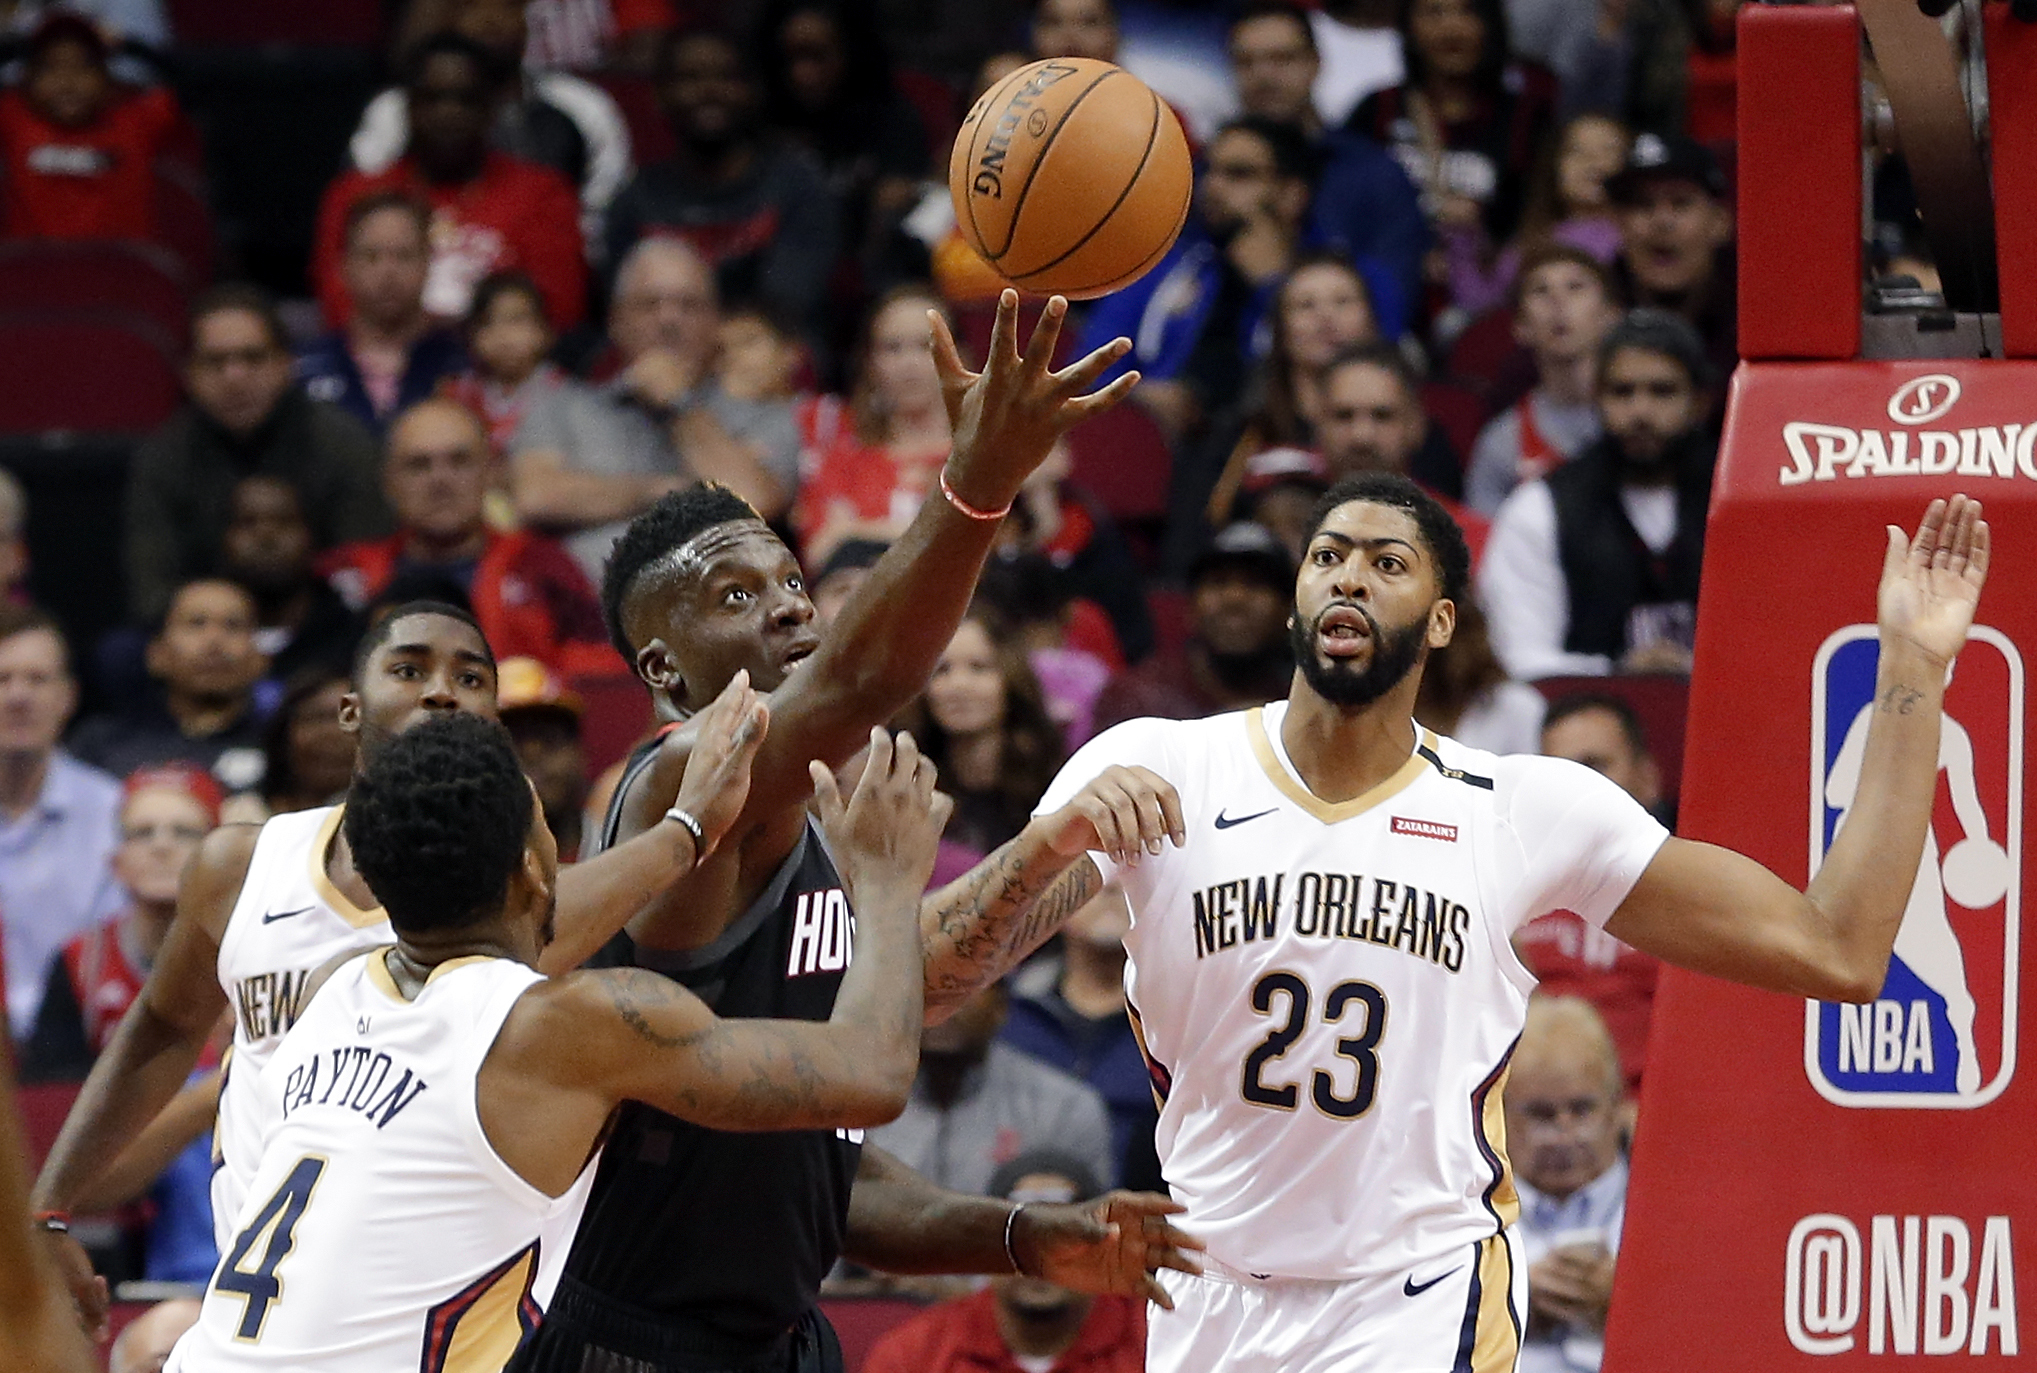 Houston Rockets center Clint Capela, center, reaches for a rebound between New Orleans Pelicans guard Elfrid Payton (4) and forward Anthony Davis (23) during the first half of an NBA basketball game Wednesday, Oct. 17, 2018, in Houston. (AP Photo/Michael Wyke) AP